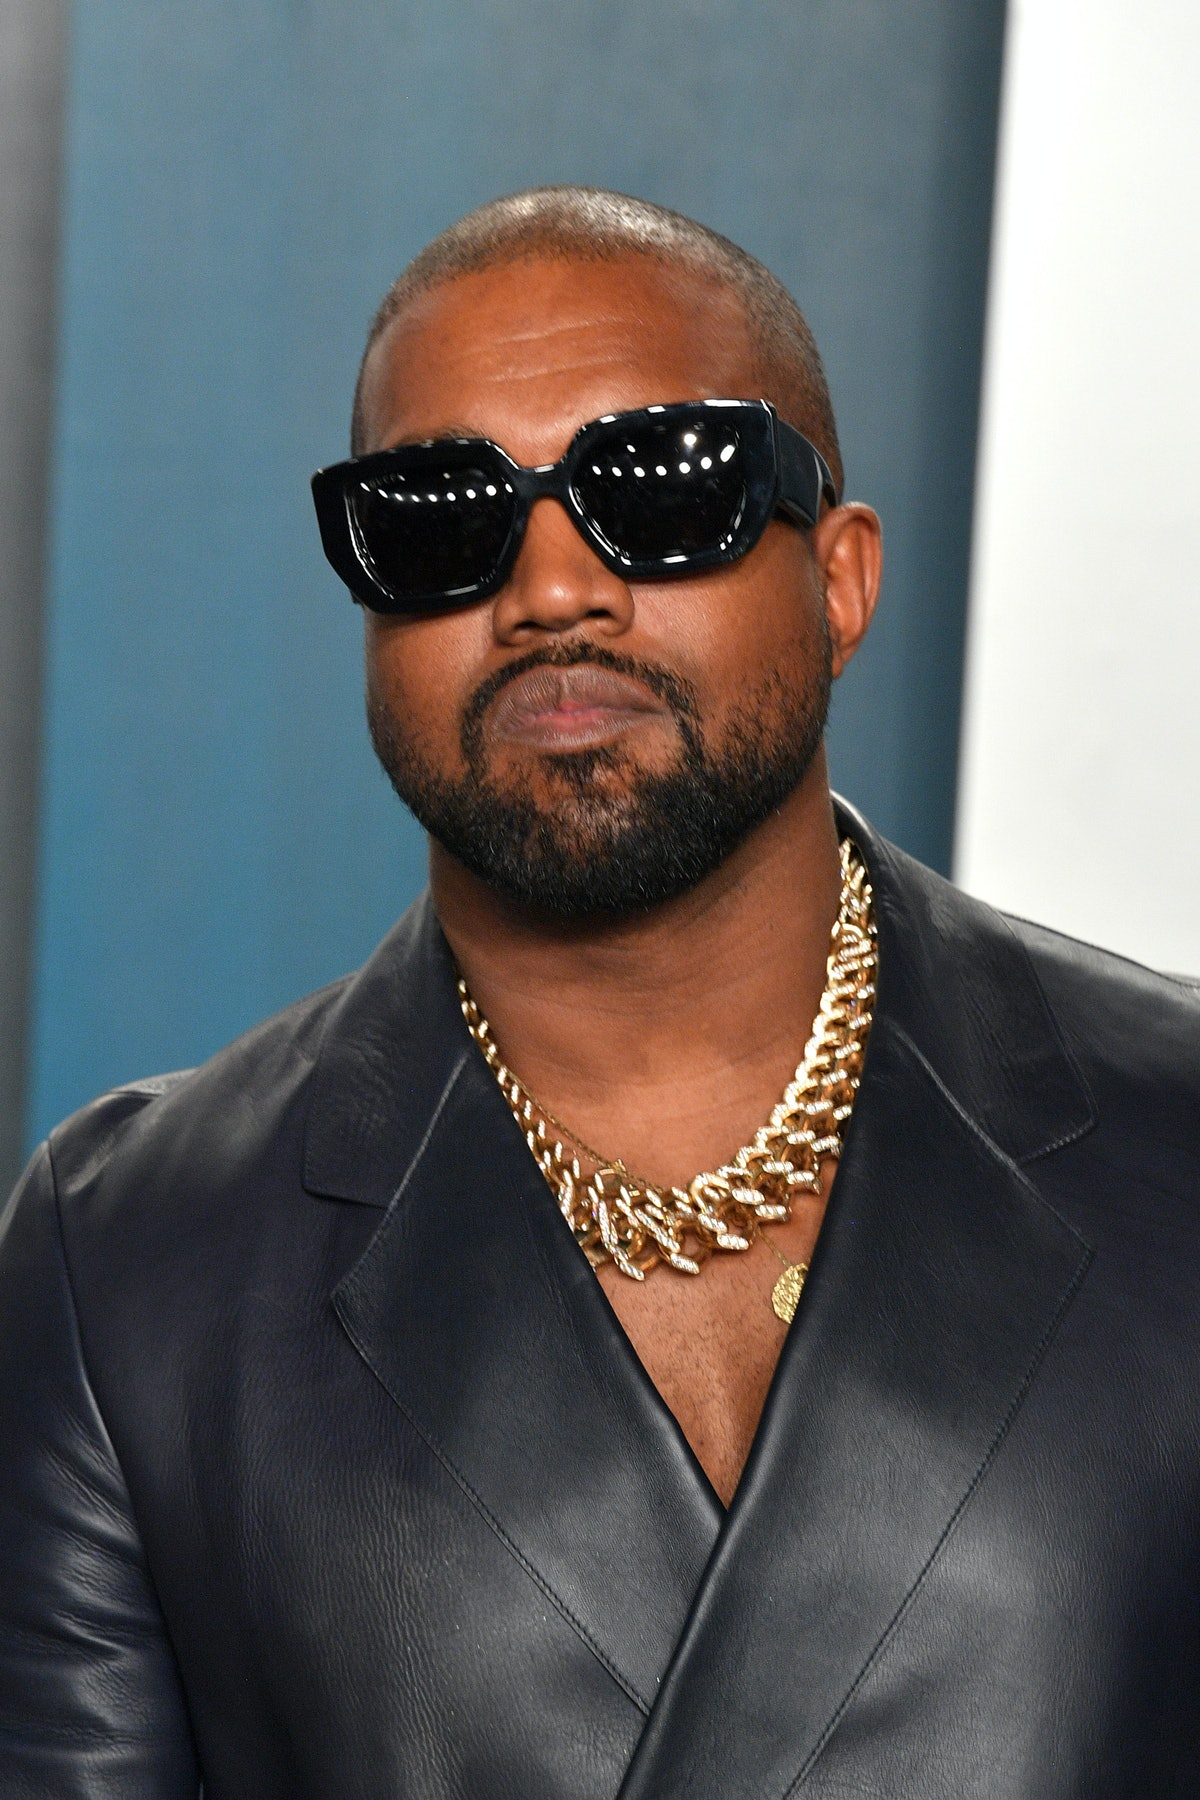 The most ridiculous of all the Gemini celebrities: Kanye West